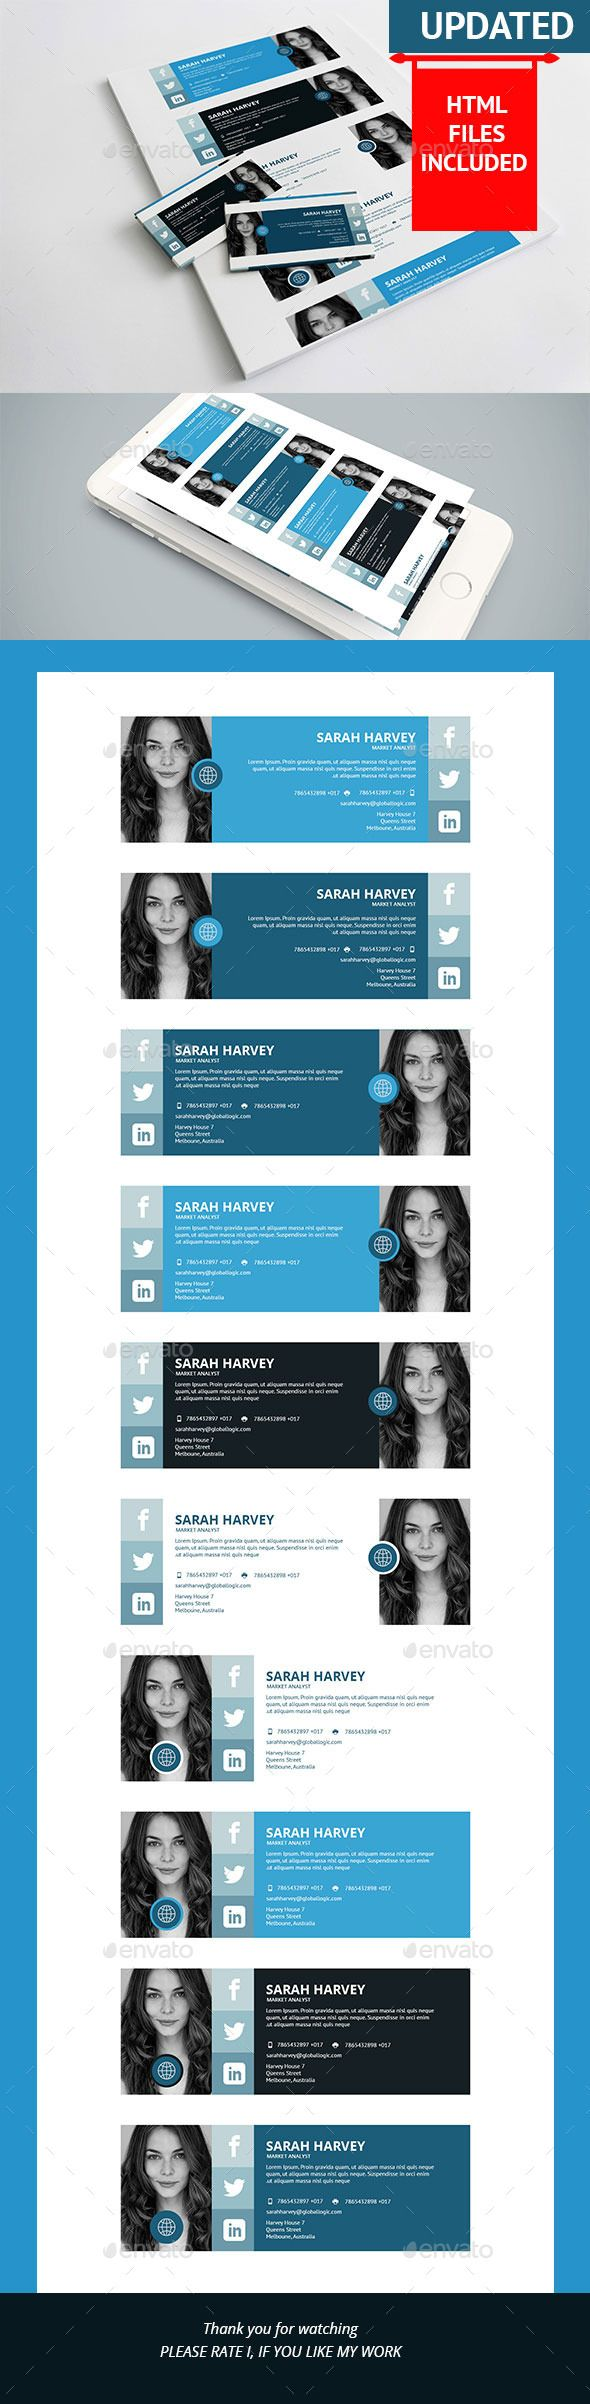 19 best images about Email Signature Designs on Pinterest ...